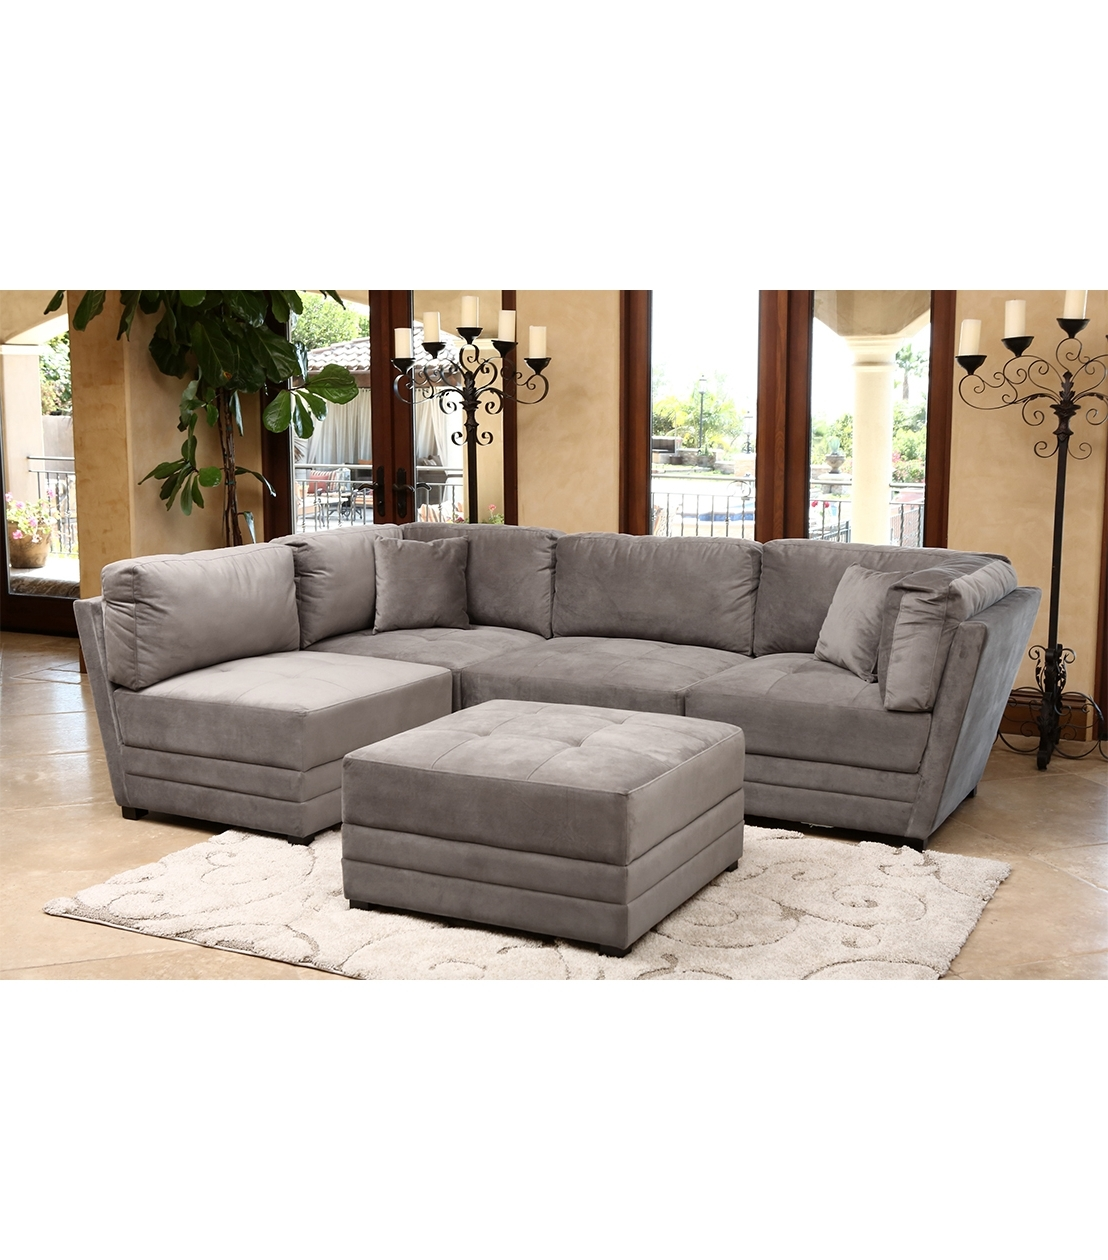 Sectionals : Leyla Sectional, Taupe In Most Recently Released Abbyson Sectional Sofas (View 5 of 20)